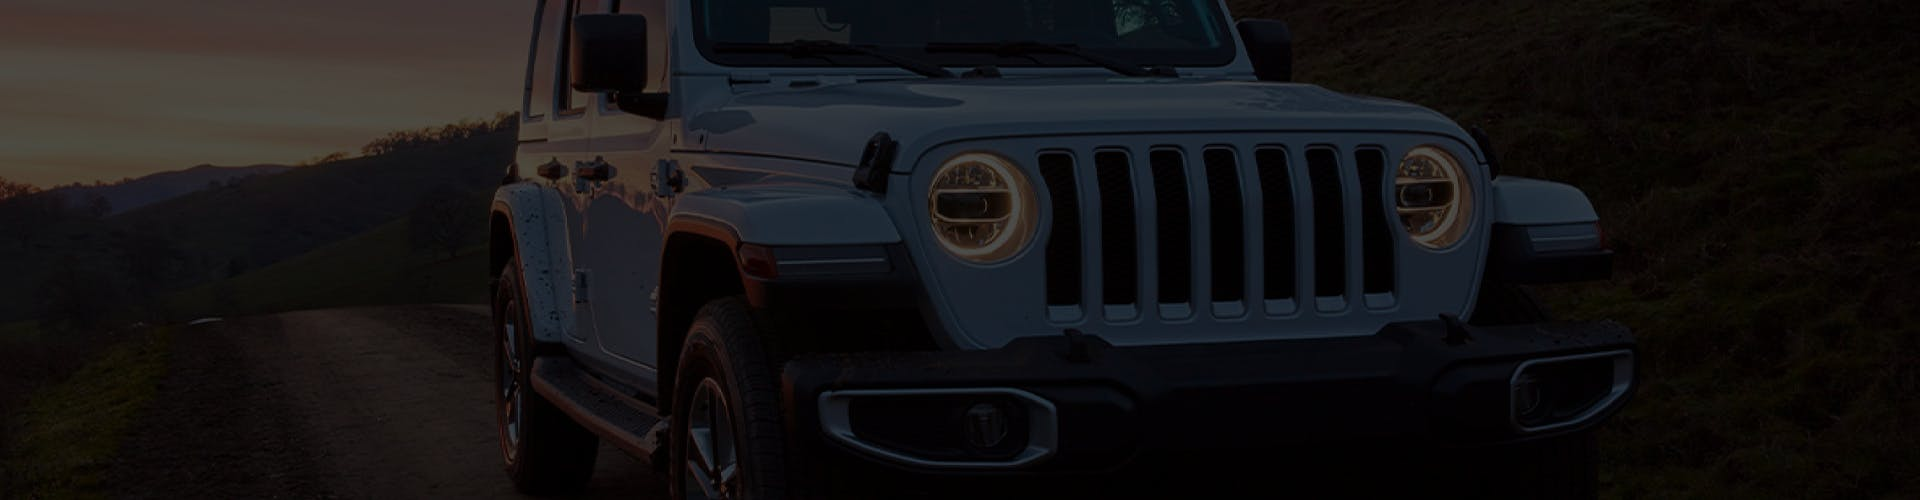 Moon township pa dealership Chrysler dodge jeep ram sales diehl of moon pennsylvania Diehl Automotive Chrysler specials dodge specials jeep specials ram specials lease discount family pricing drive forward